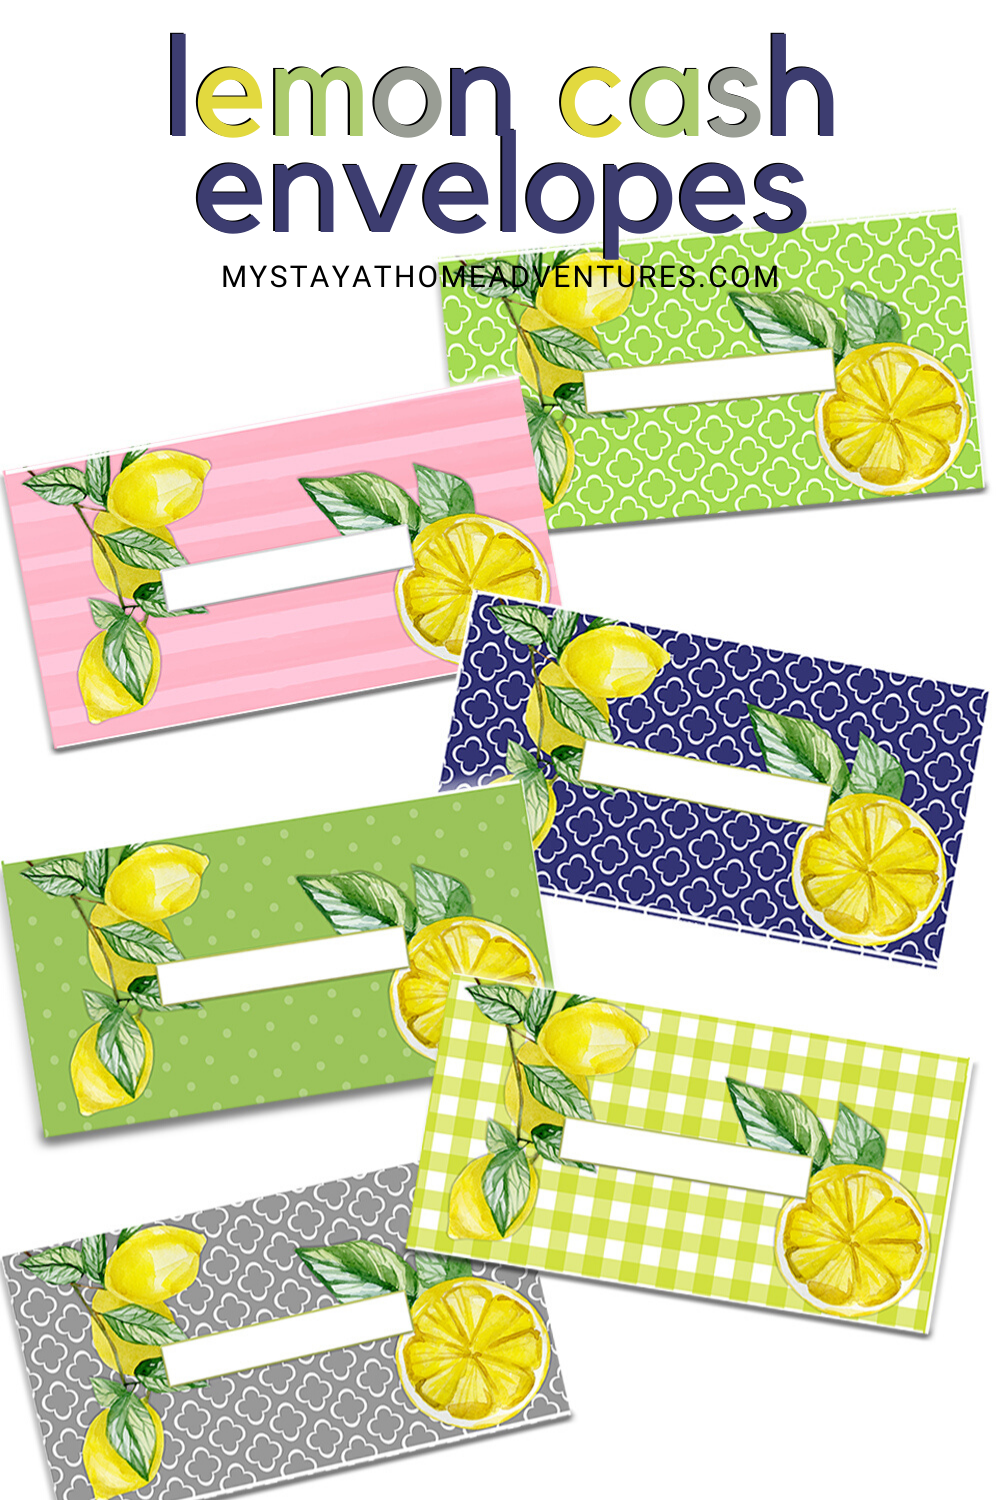 Hurry and grab these lemon cash envelopes printables just in time for summer. The printable package comes with 6 styles of cash envelopes (jpeg) and one pdf. #cashenvelopes #cashenvelopetemplates #cashbudgeting via @mystayathome